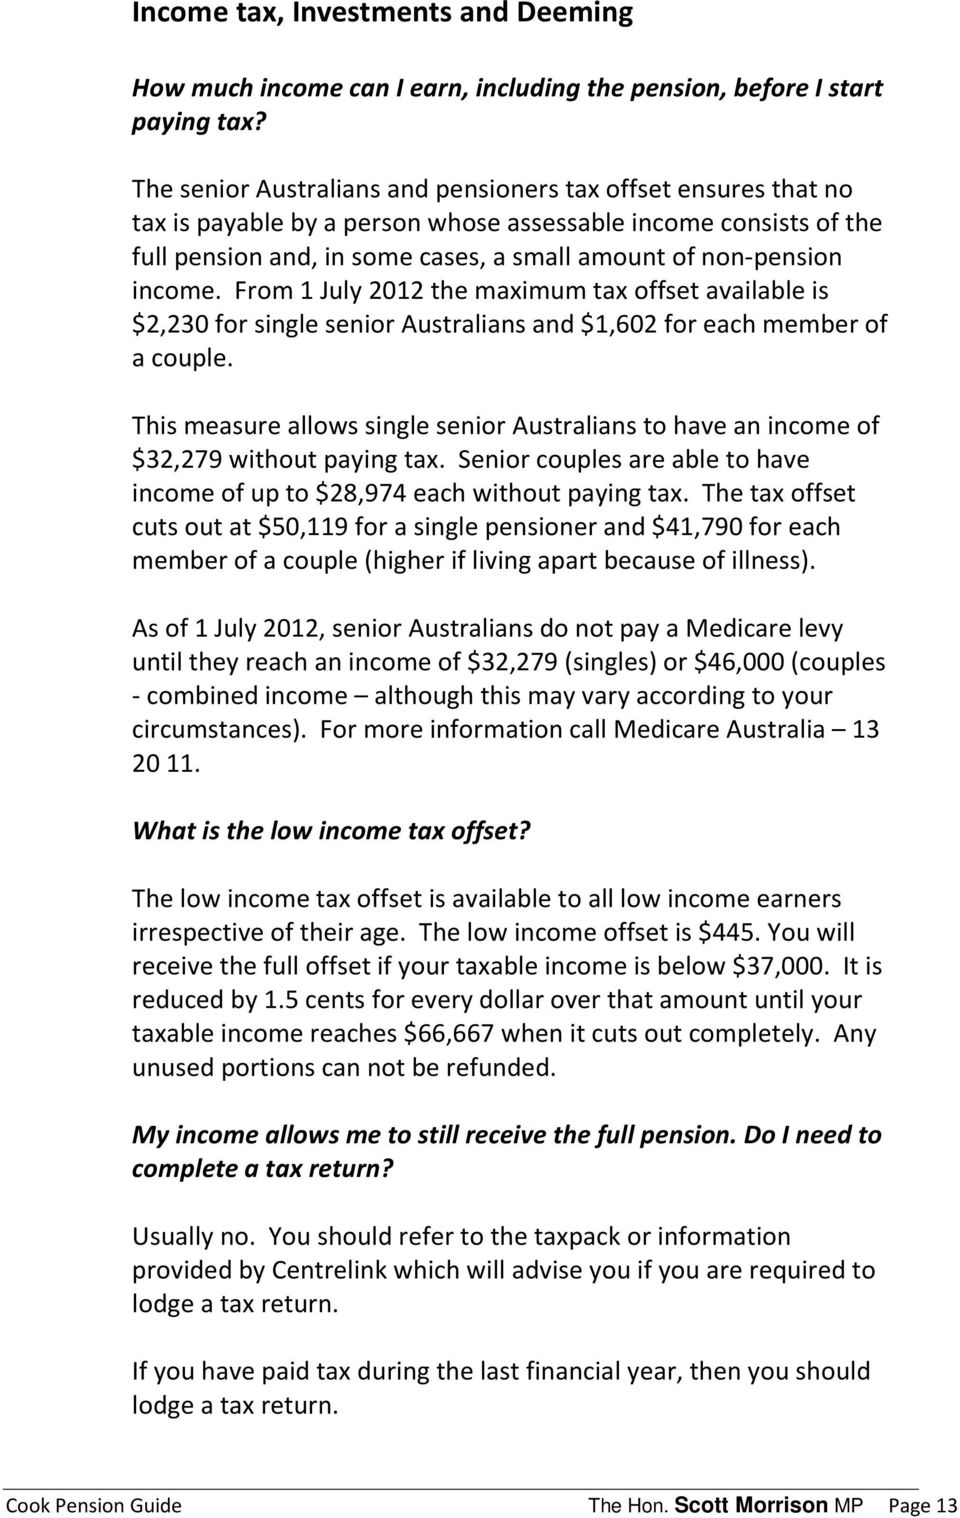 income. From 1 July 2012 the maximum tax offset available is $2,230 for single senior Australians and $1,602 for each member of a couple.